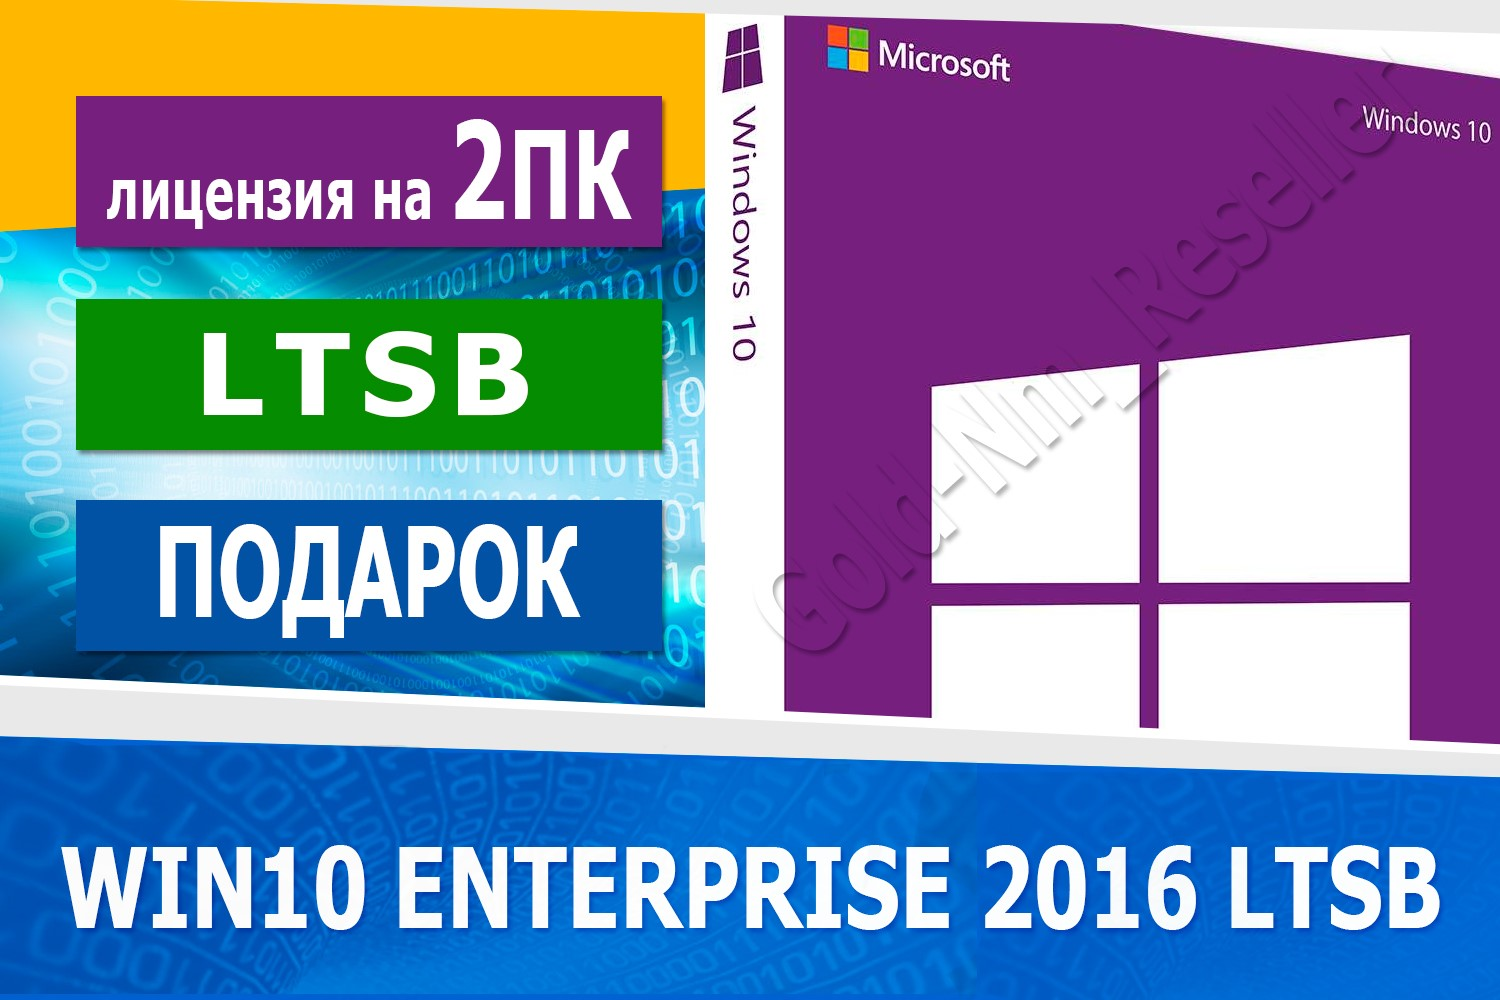 Windows 10 Enterprise 2016 LTSB 2PC